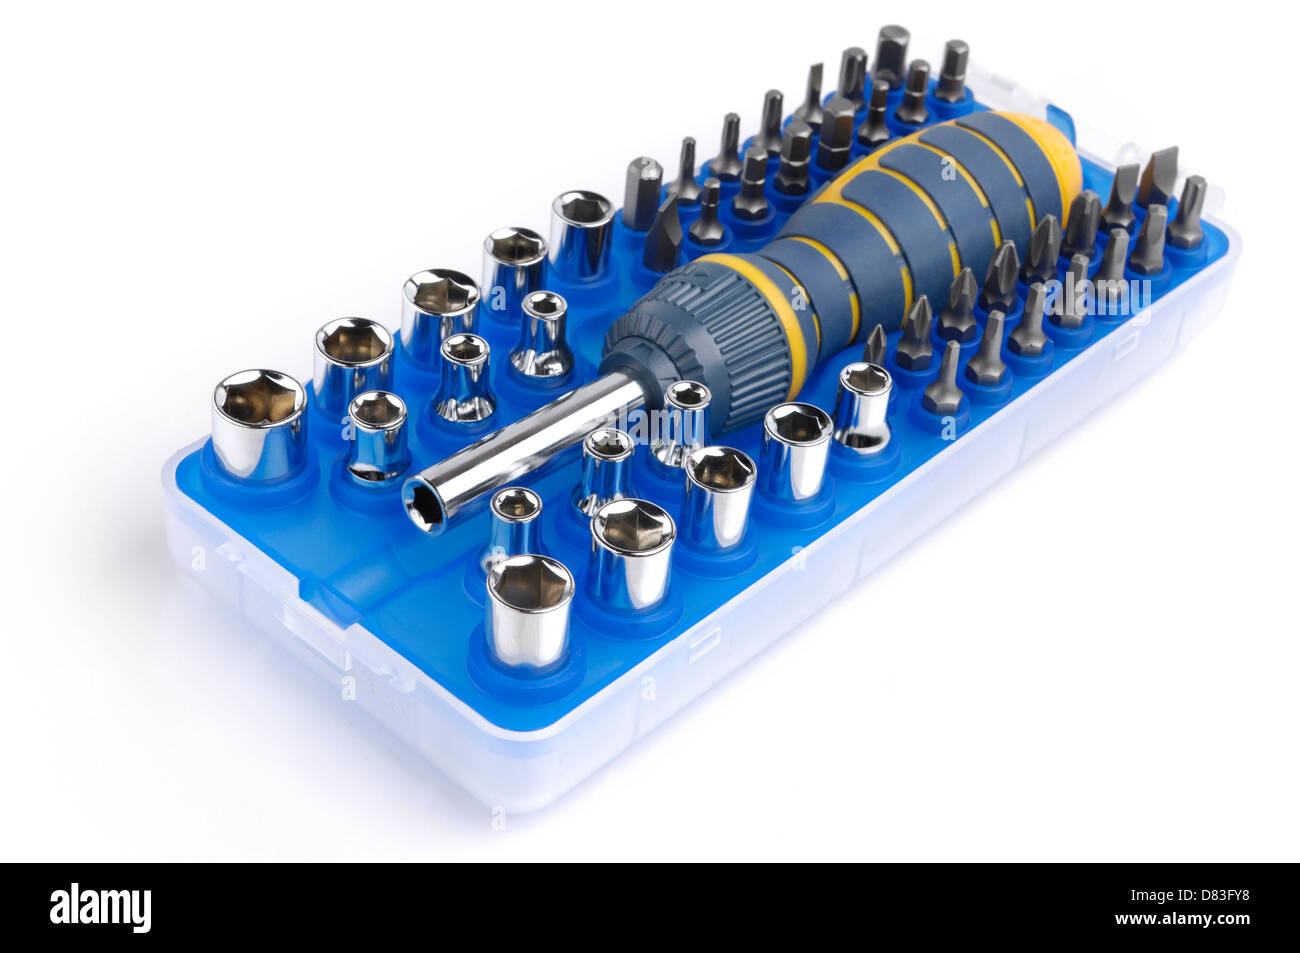 Set of tools ratchet with screwdriver bits and sockets Stock Photo